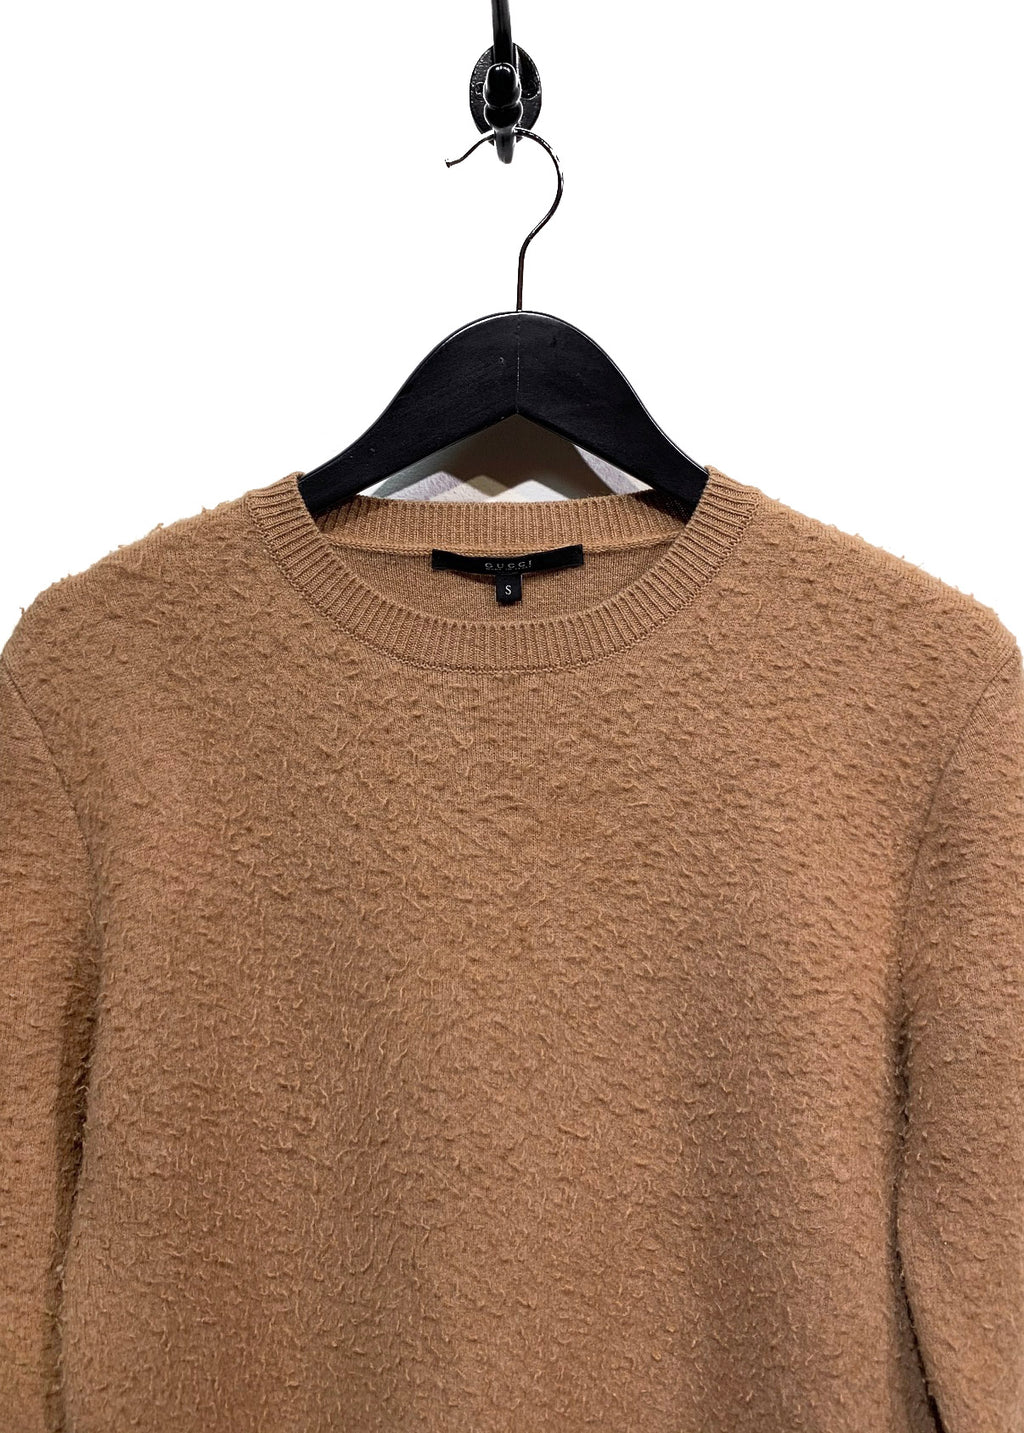 Gucci Tan Pilled Cashmere Blend Sweater